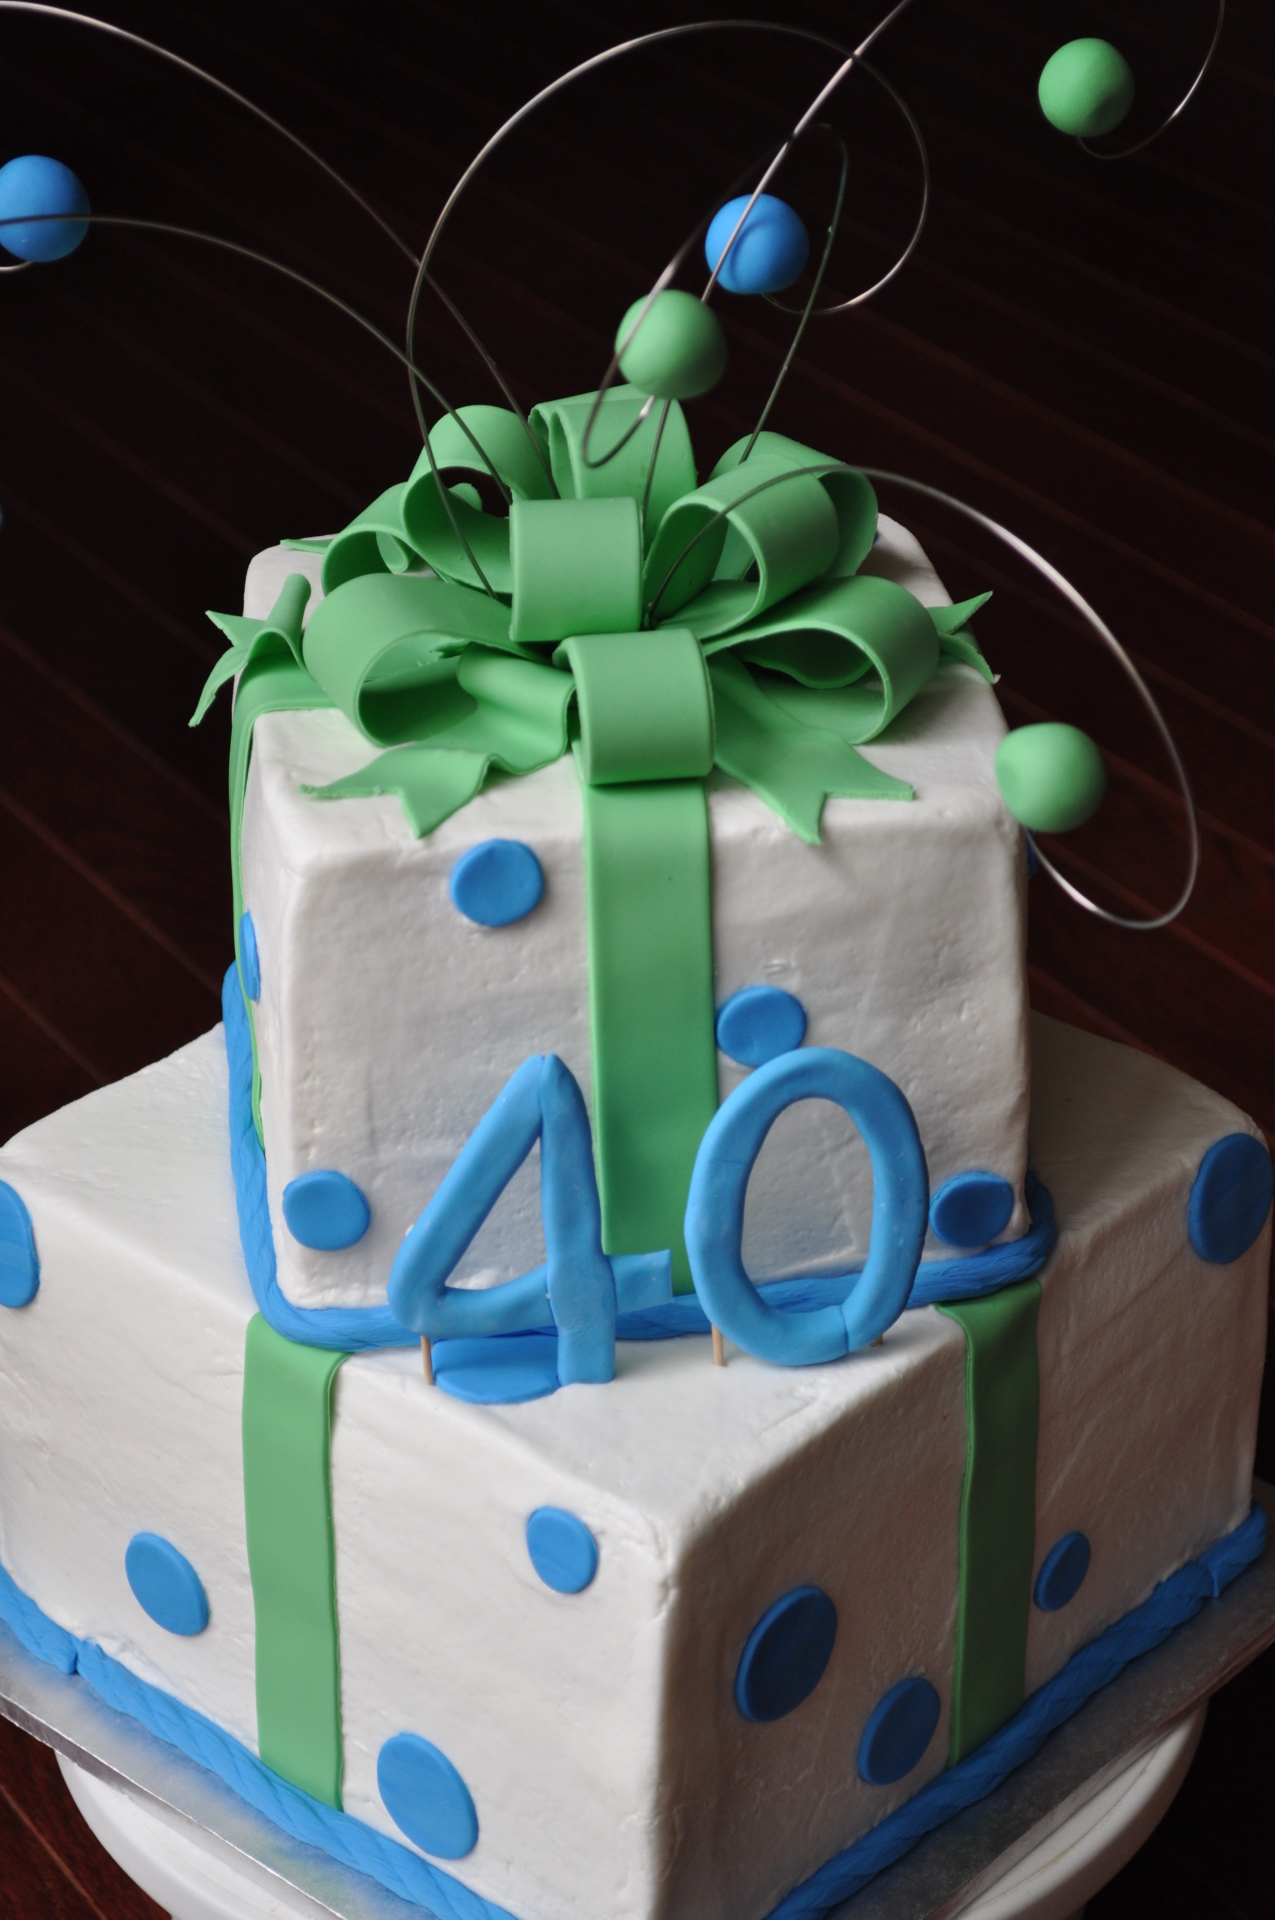 Simple birthday cake, 40th birthday cake